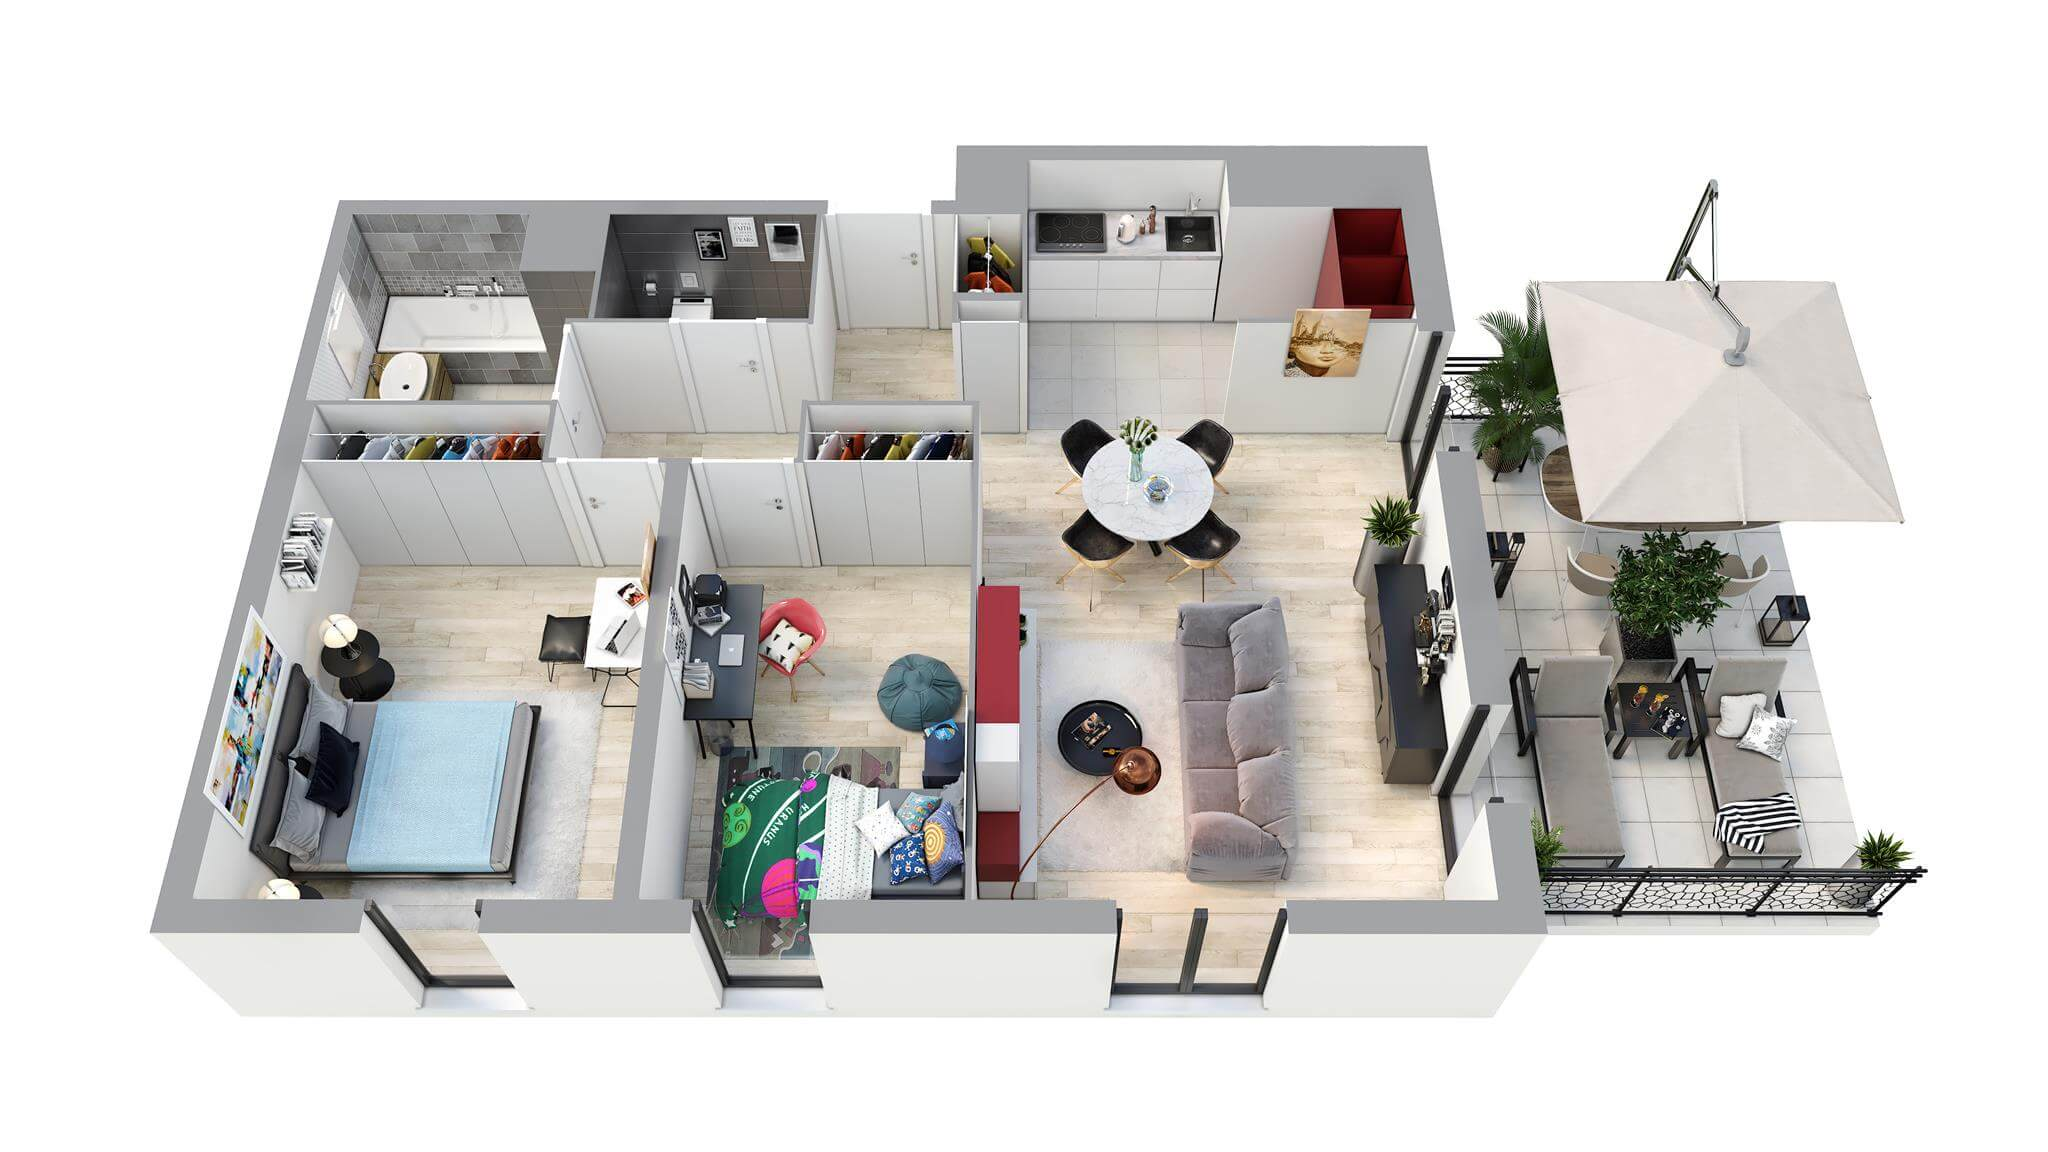 3D Apartment Floor Plans - House Floor Plans In 3D